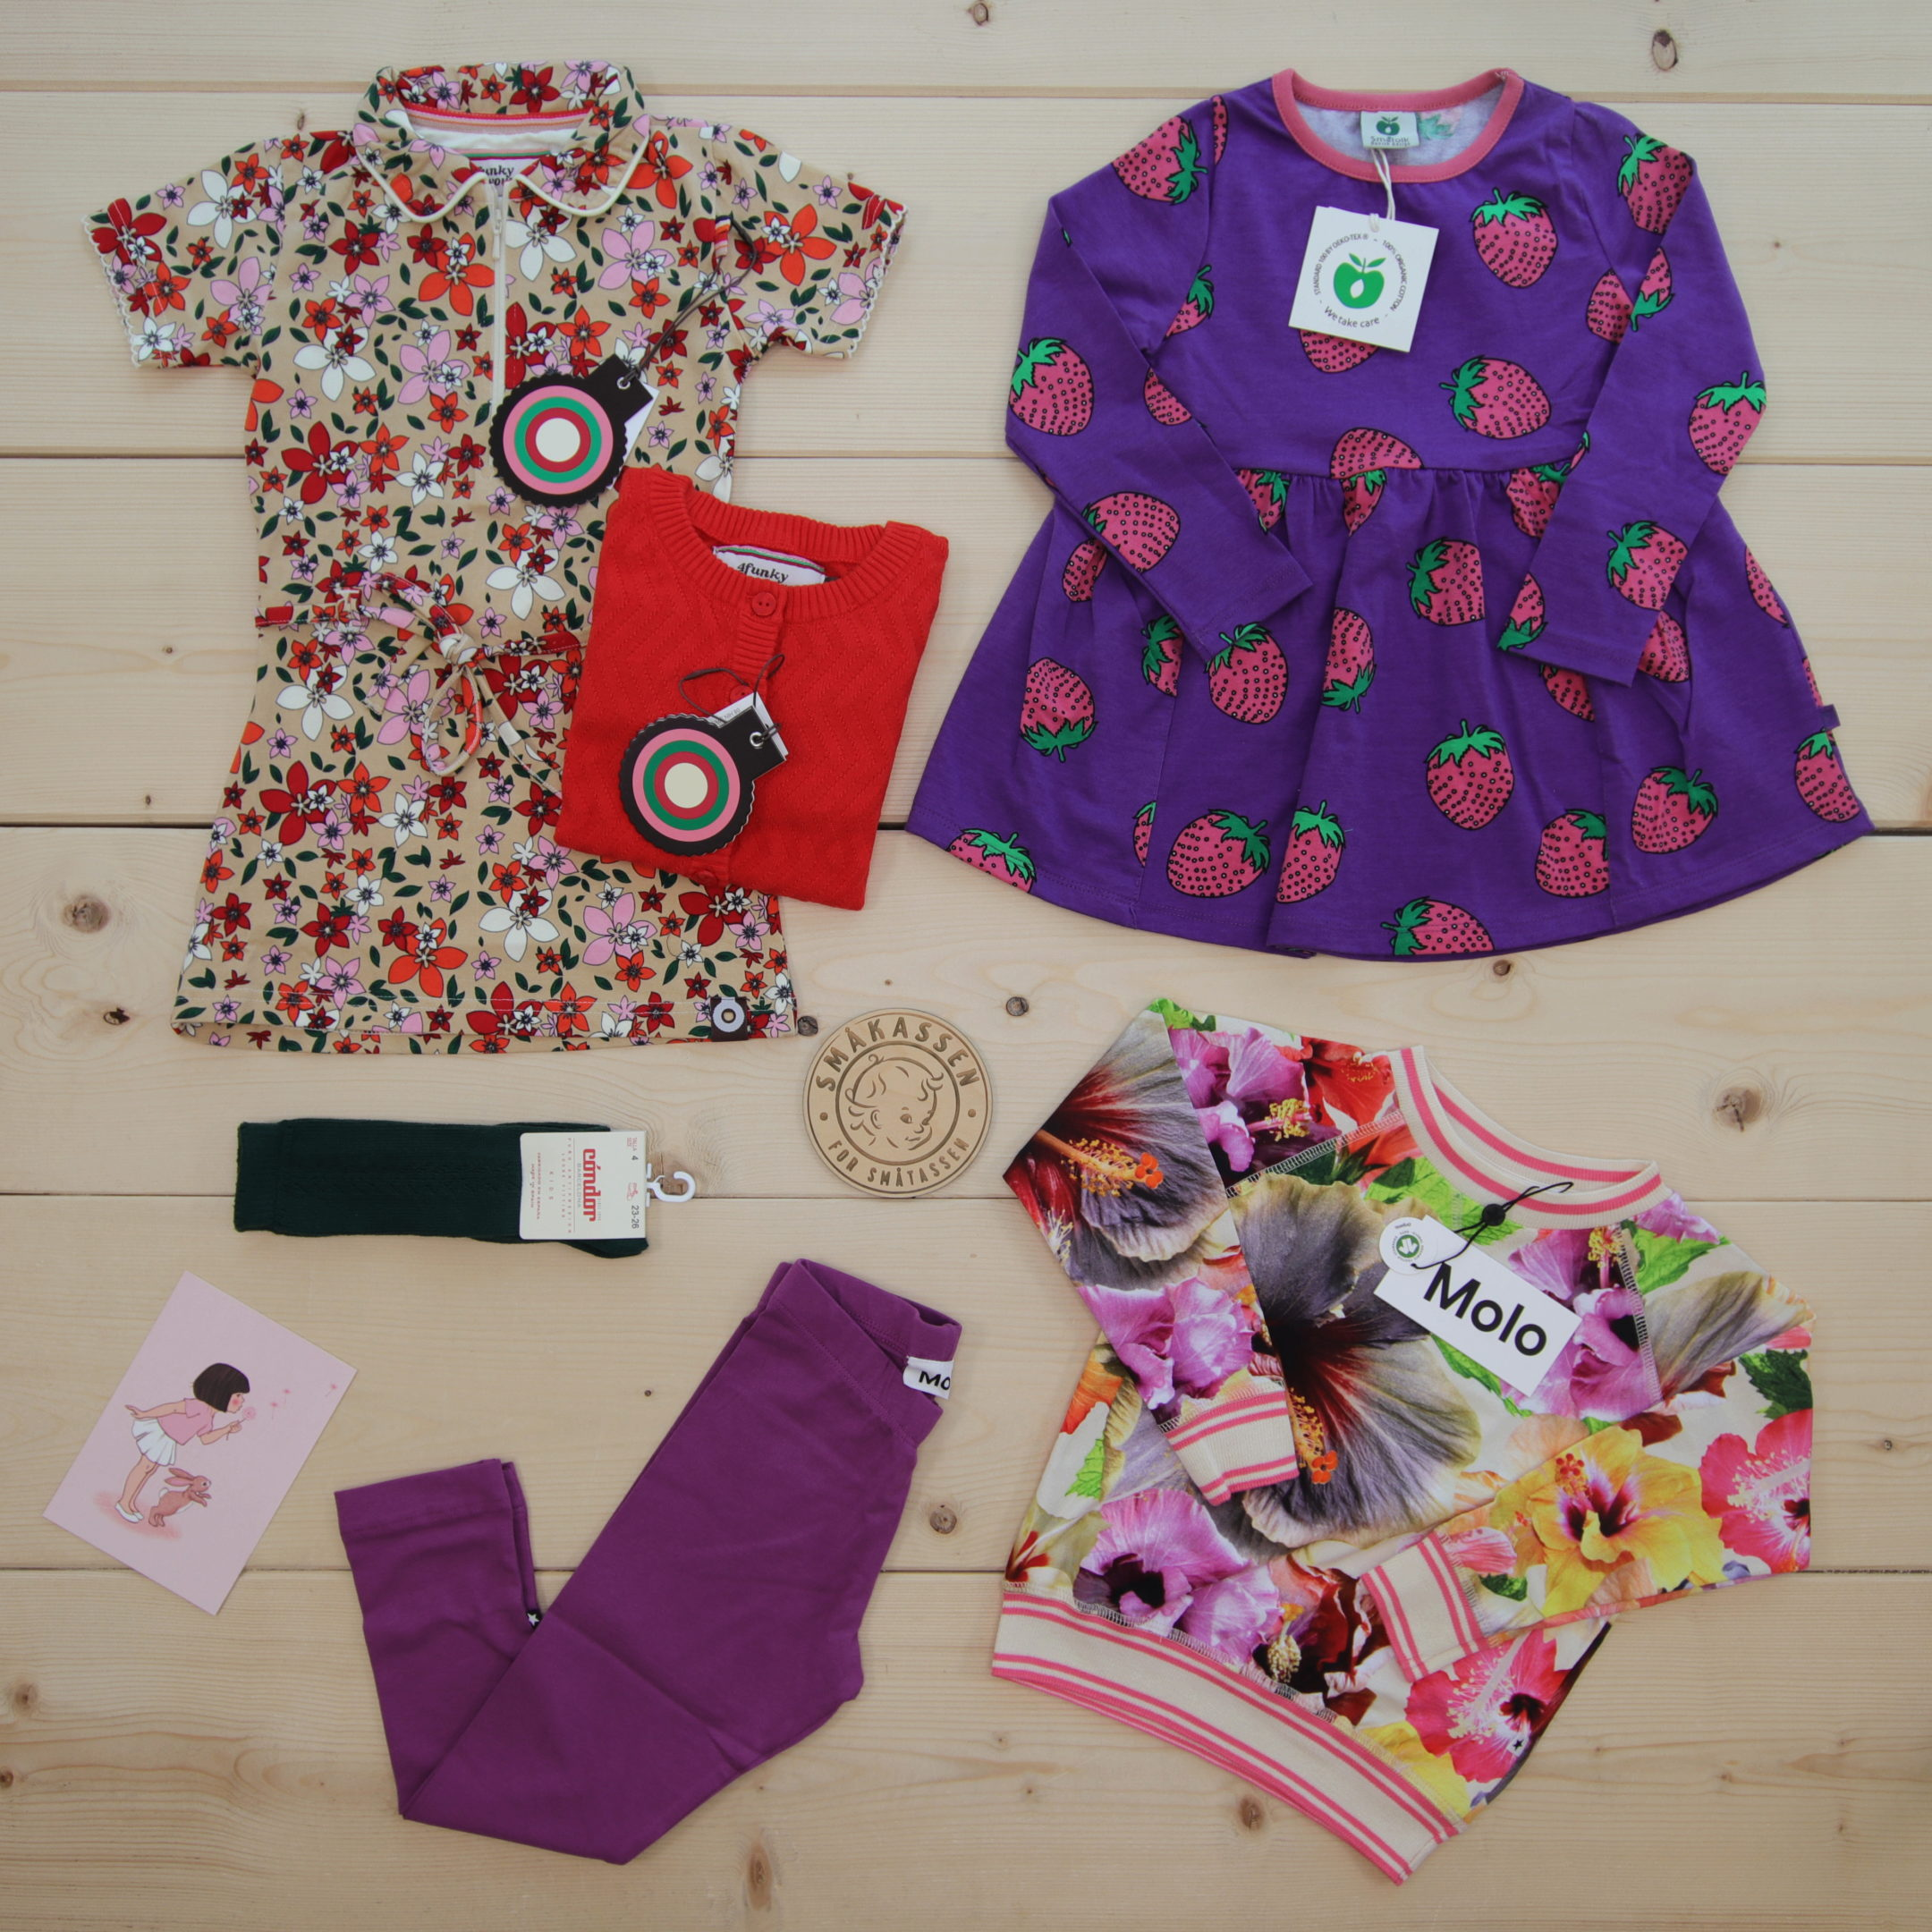 This is a 2000 NOK* Småkassen that we prepared for a girl  in the styles cute and colorful in size 98